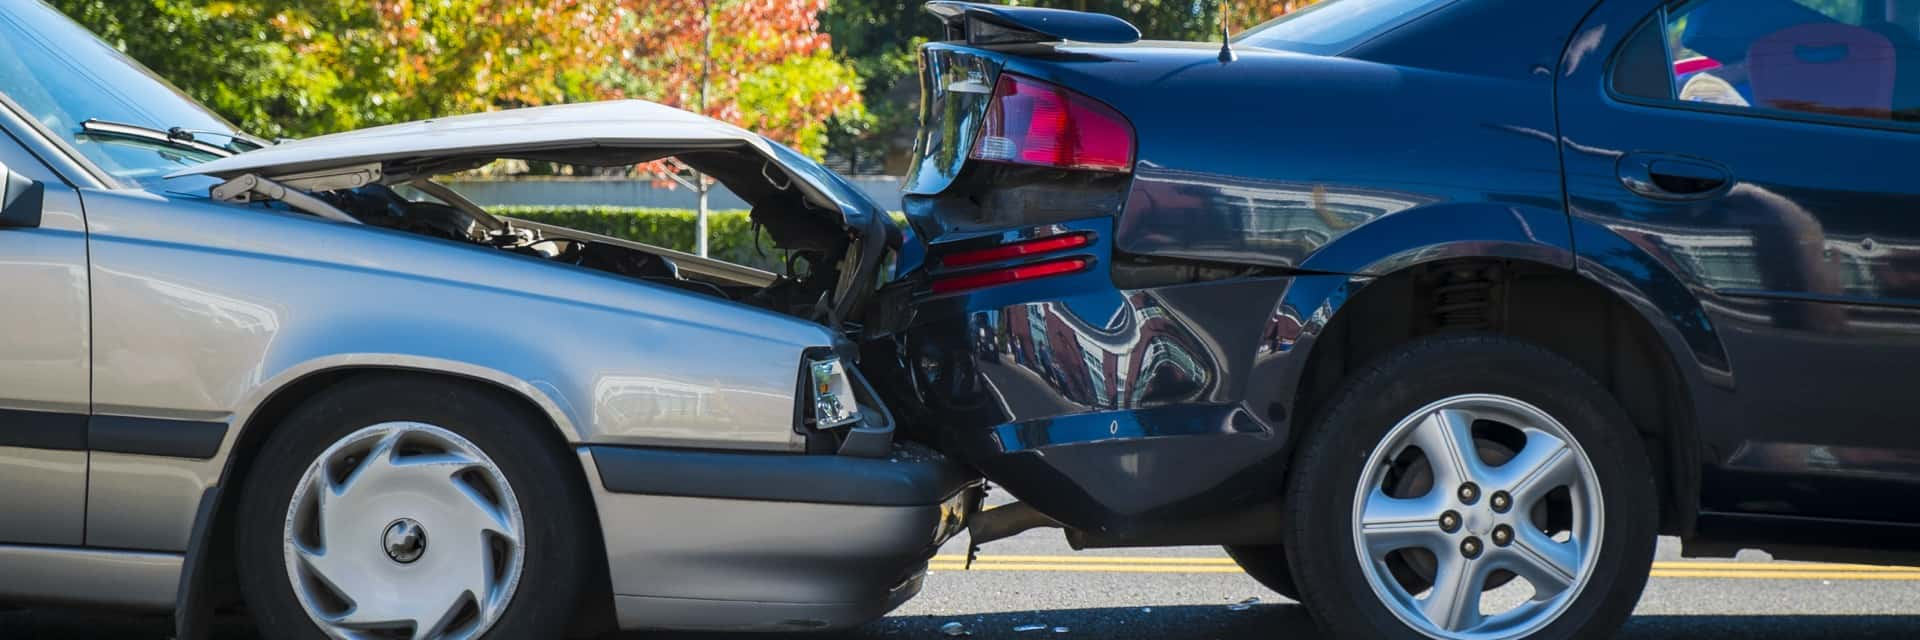 Rear end accident between two cars